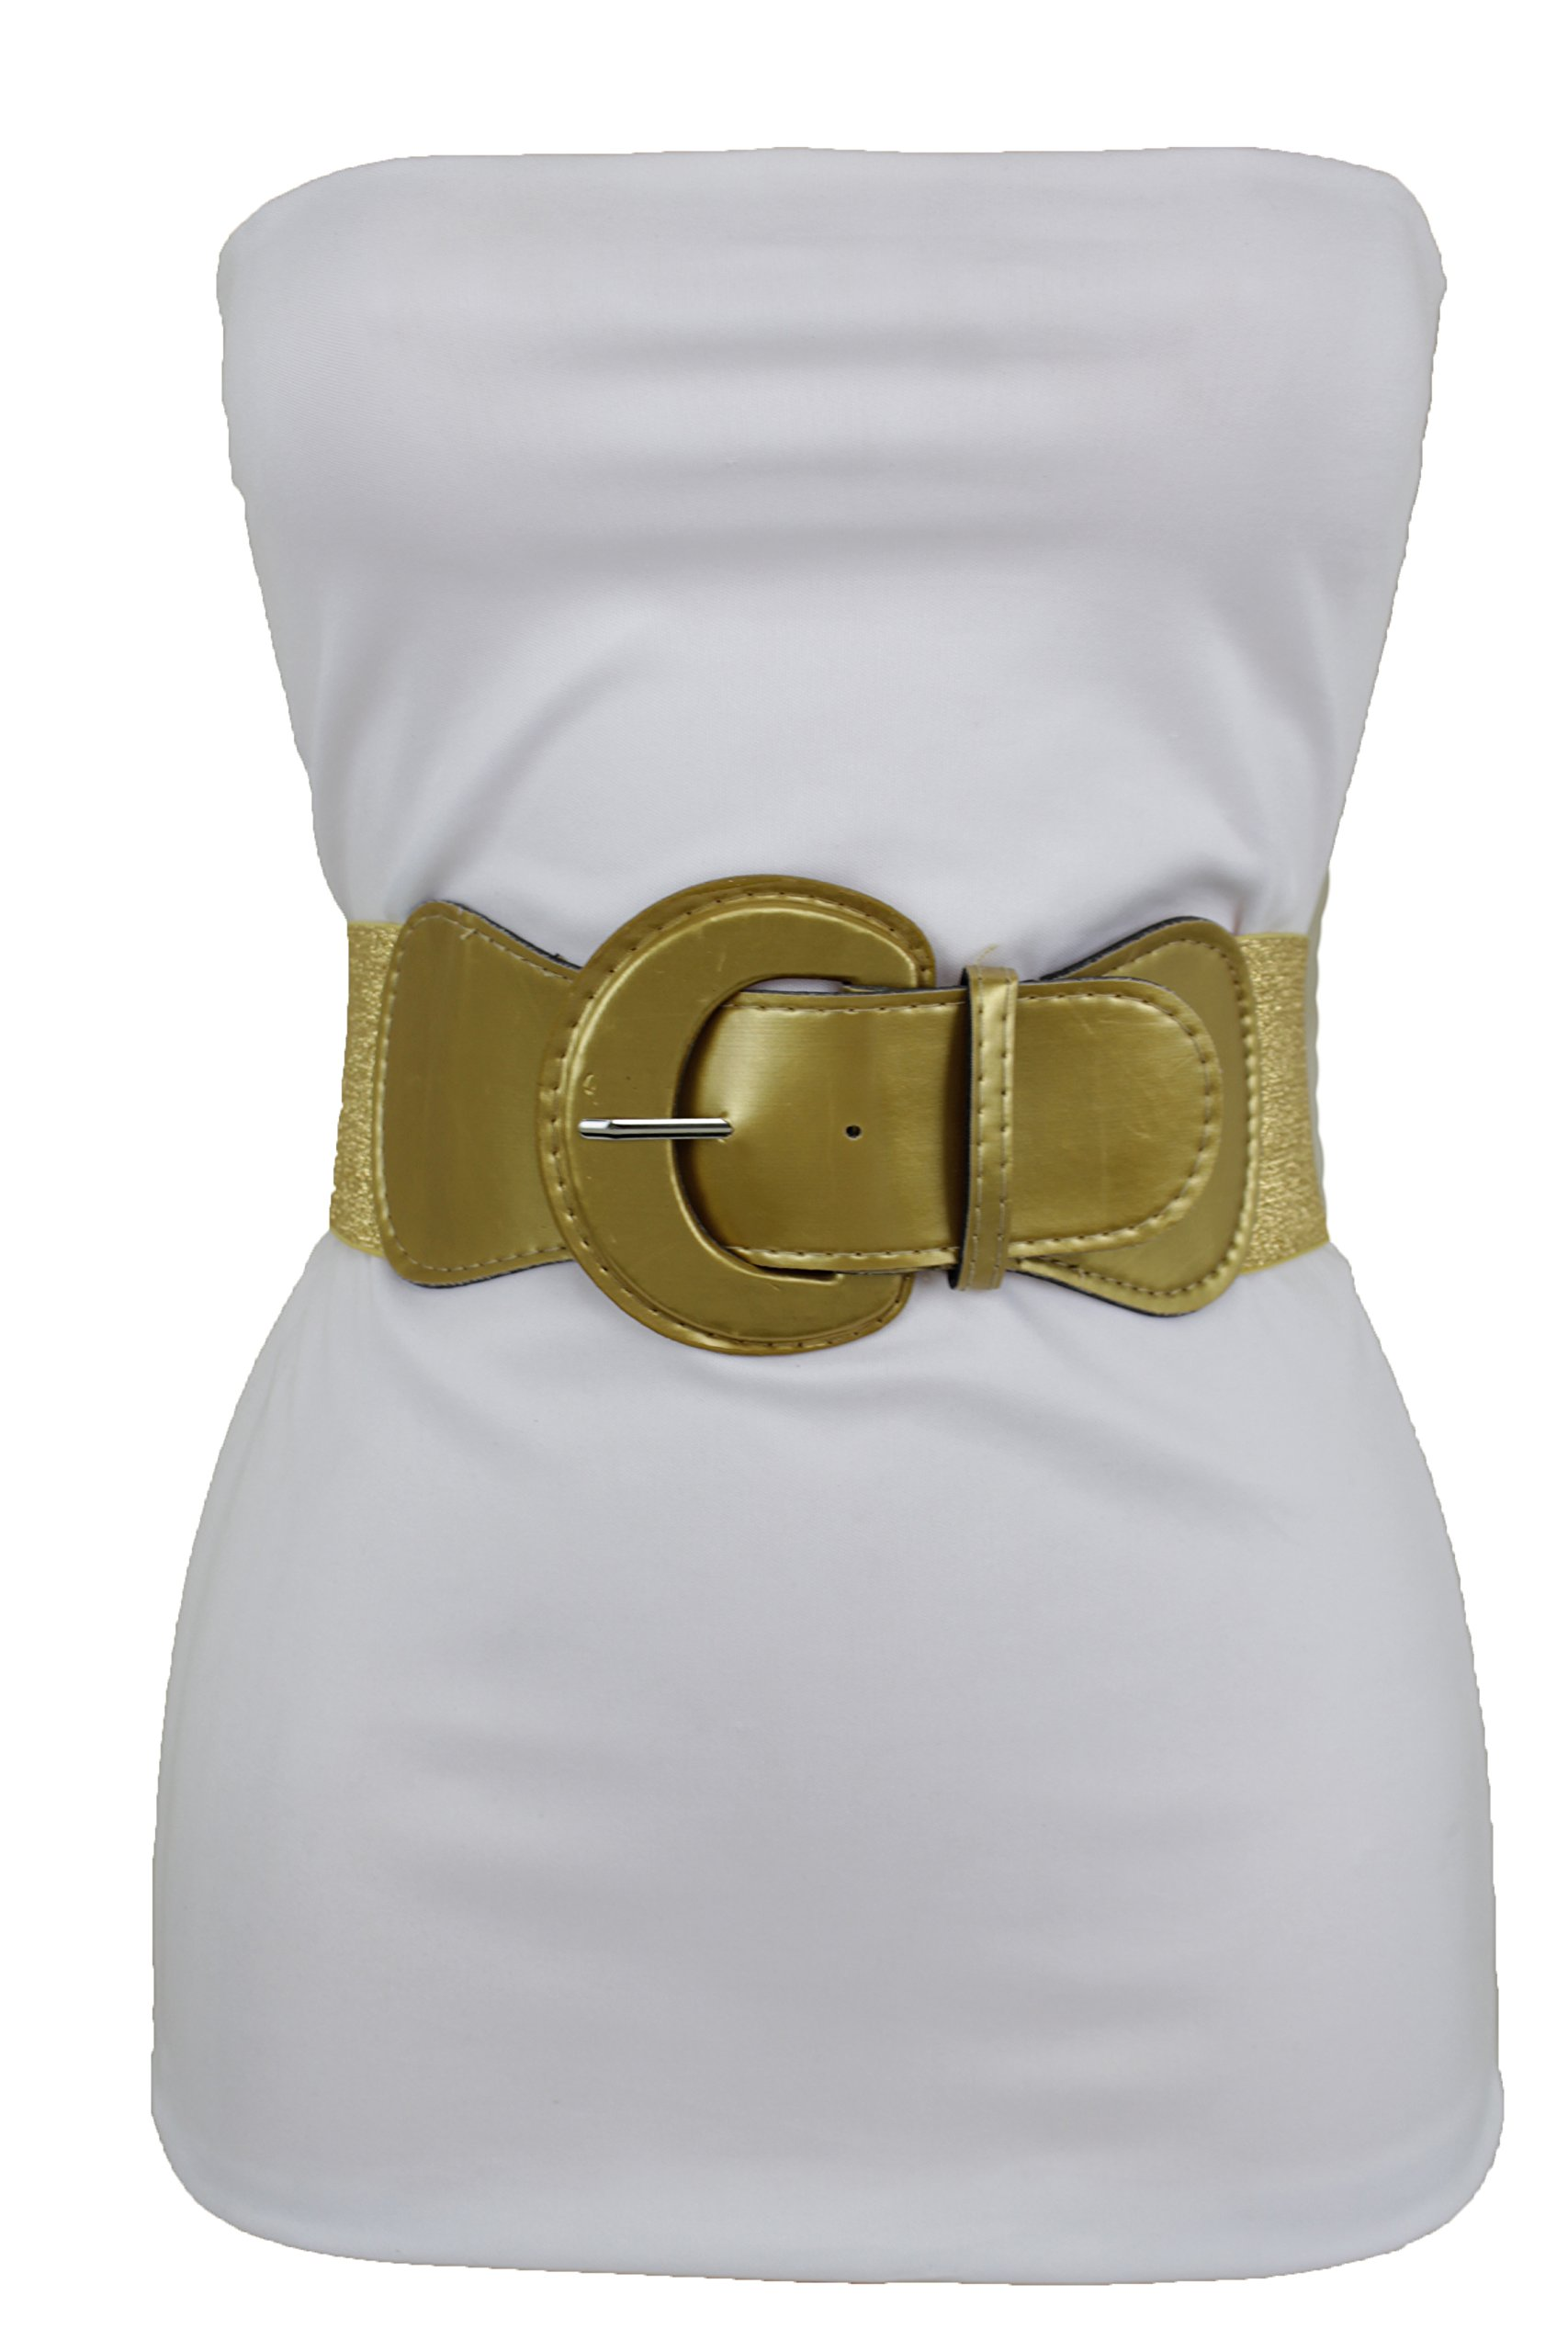 TFJ Women Elastic Waistband Fabric Fashion Wide Belt Hip High Waist Gold Big Buckle (Gold M-XL 32''-45'')